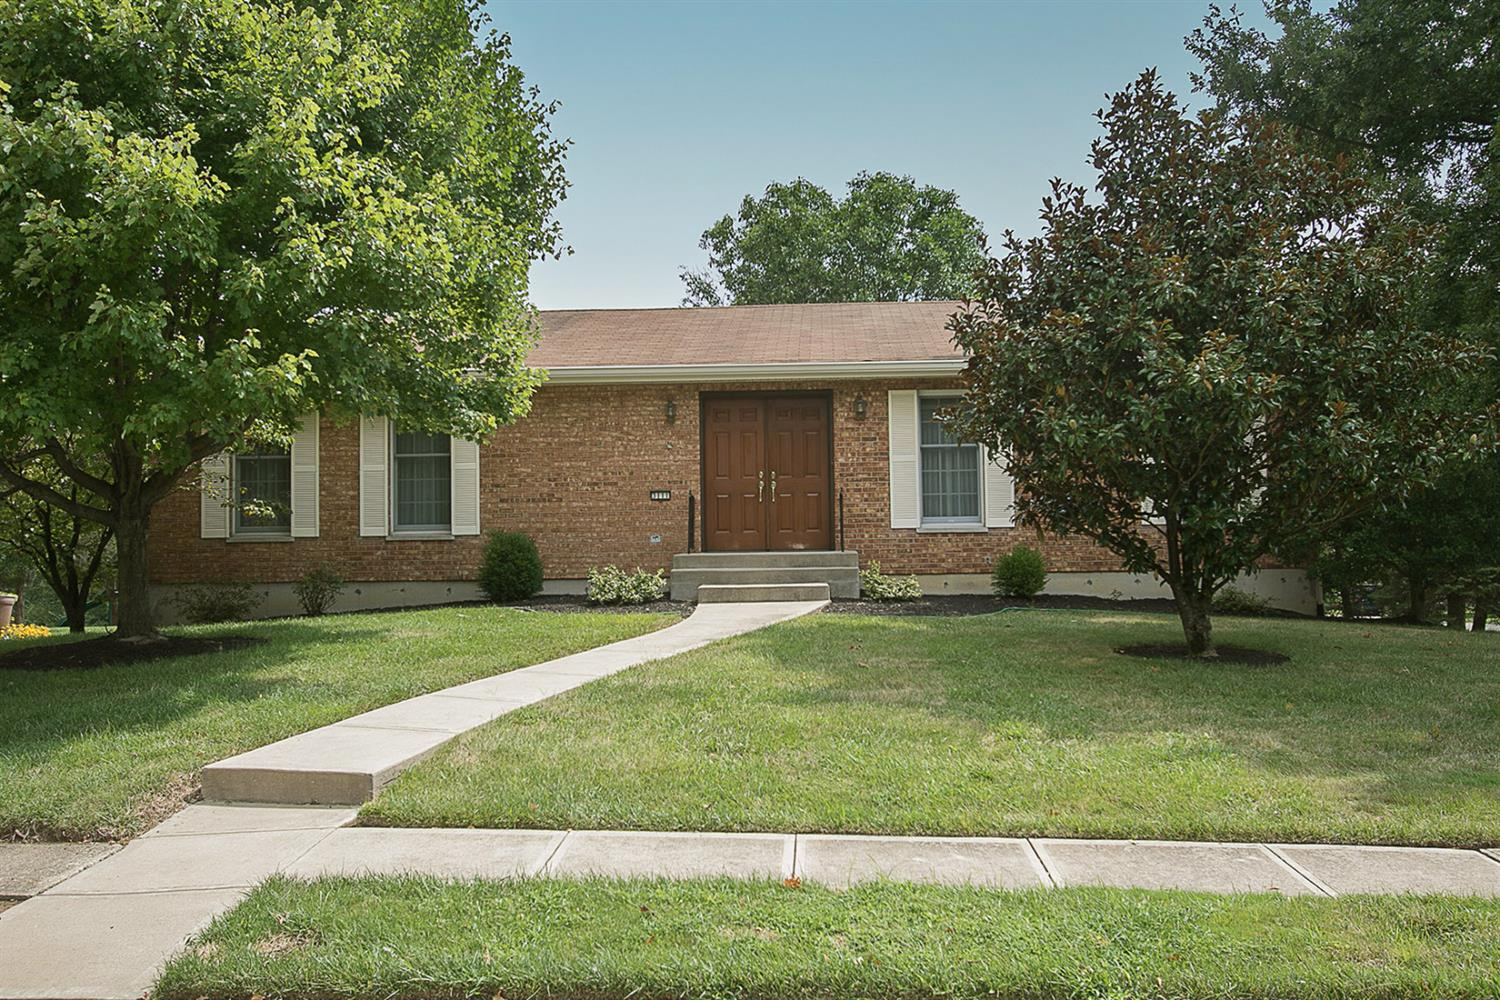 Photo 1 for 3111 Stoneridge Dr Edgewood, KY 41017